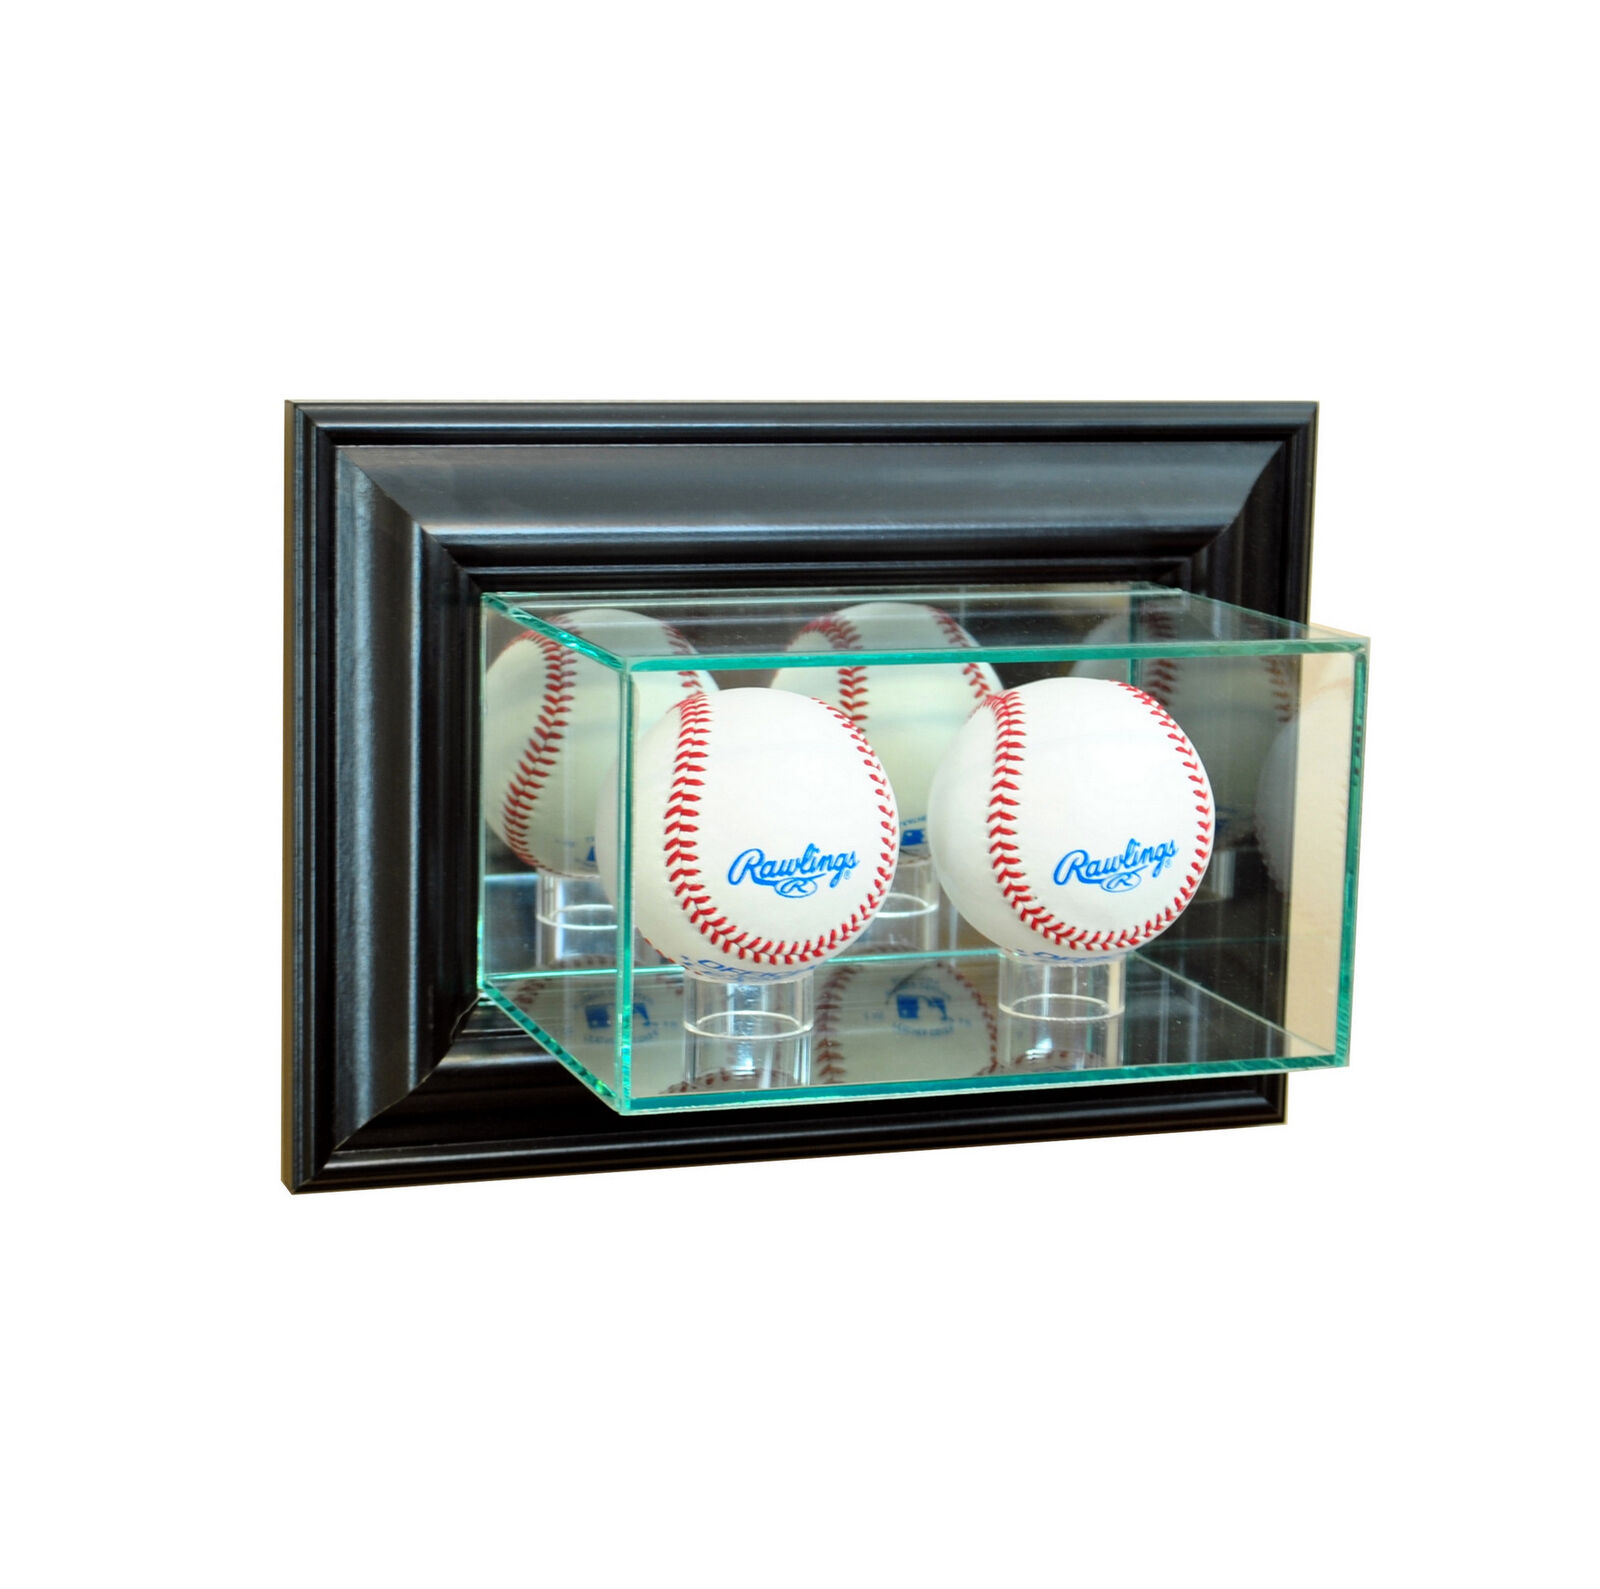 Wall Mounted Display Case Details About Wall Mount Glass Double Baseball Display Case Uv Protection Black Wood Mirror